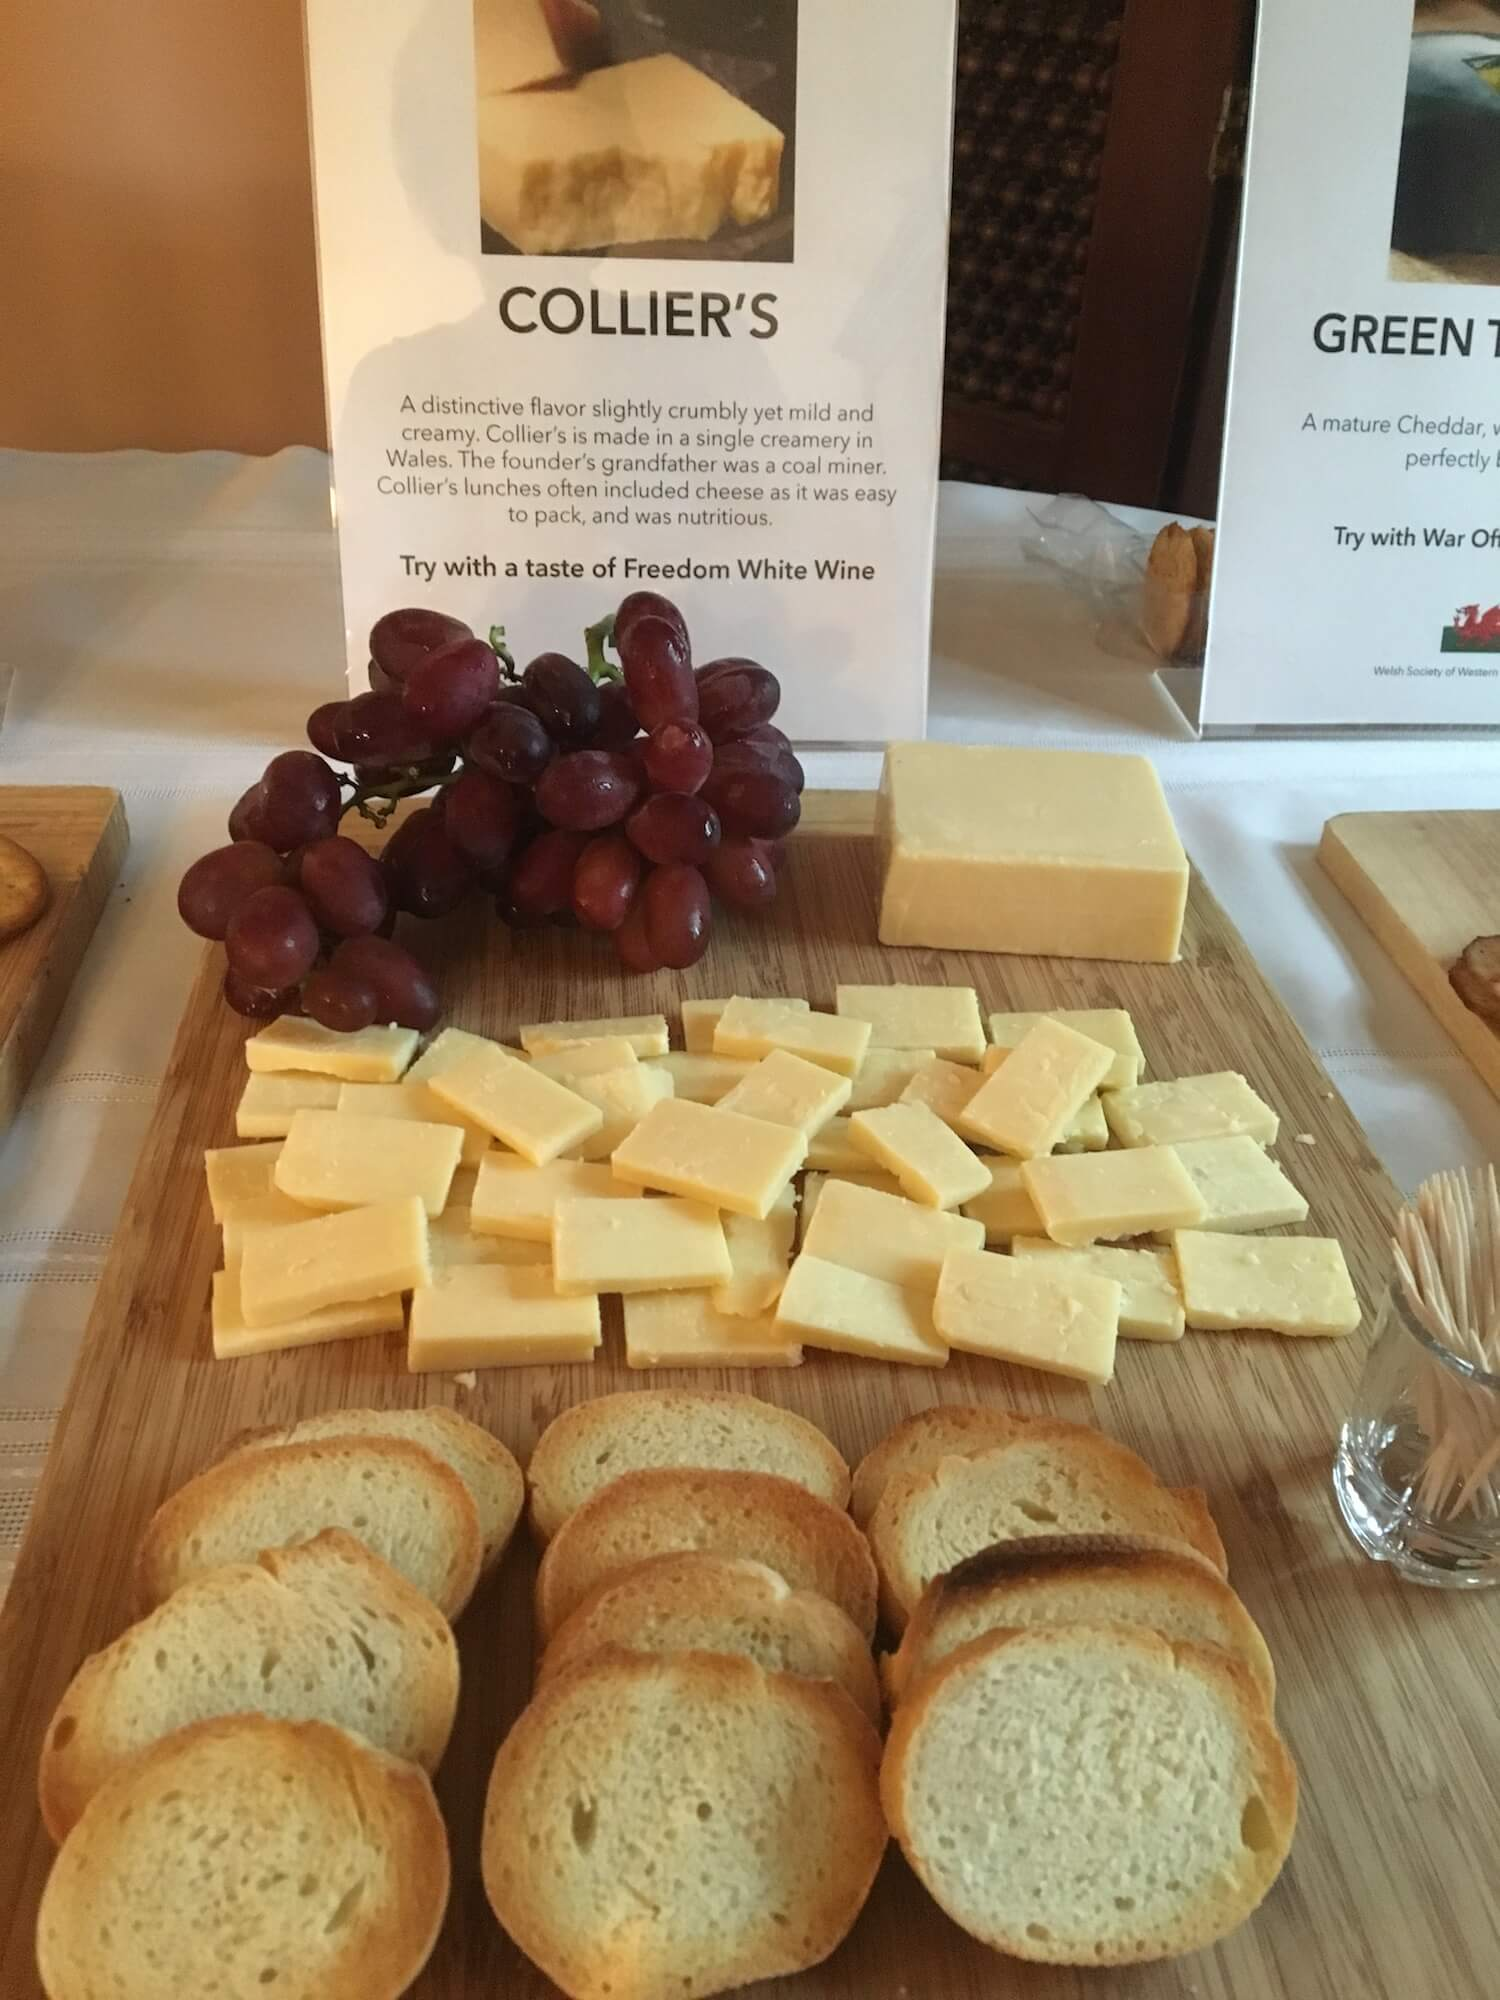 Colliers cheese with grape cluster, bread